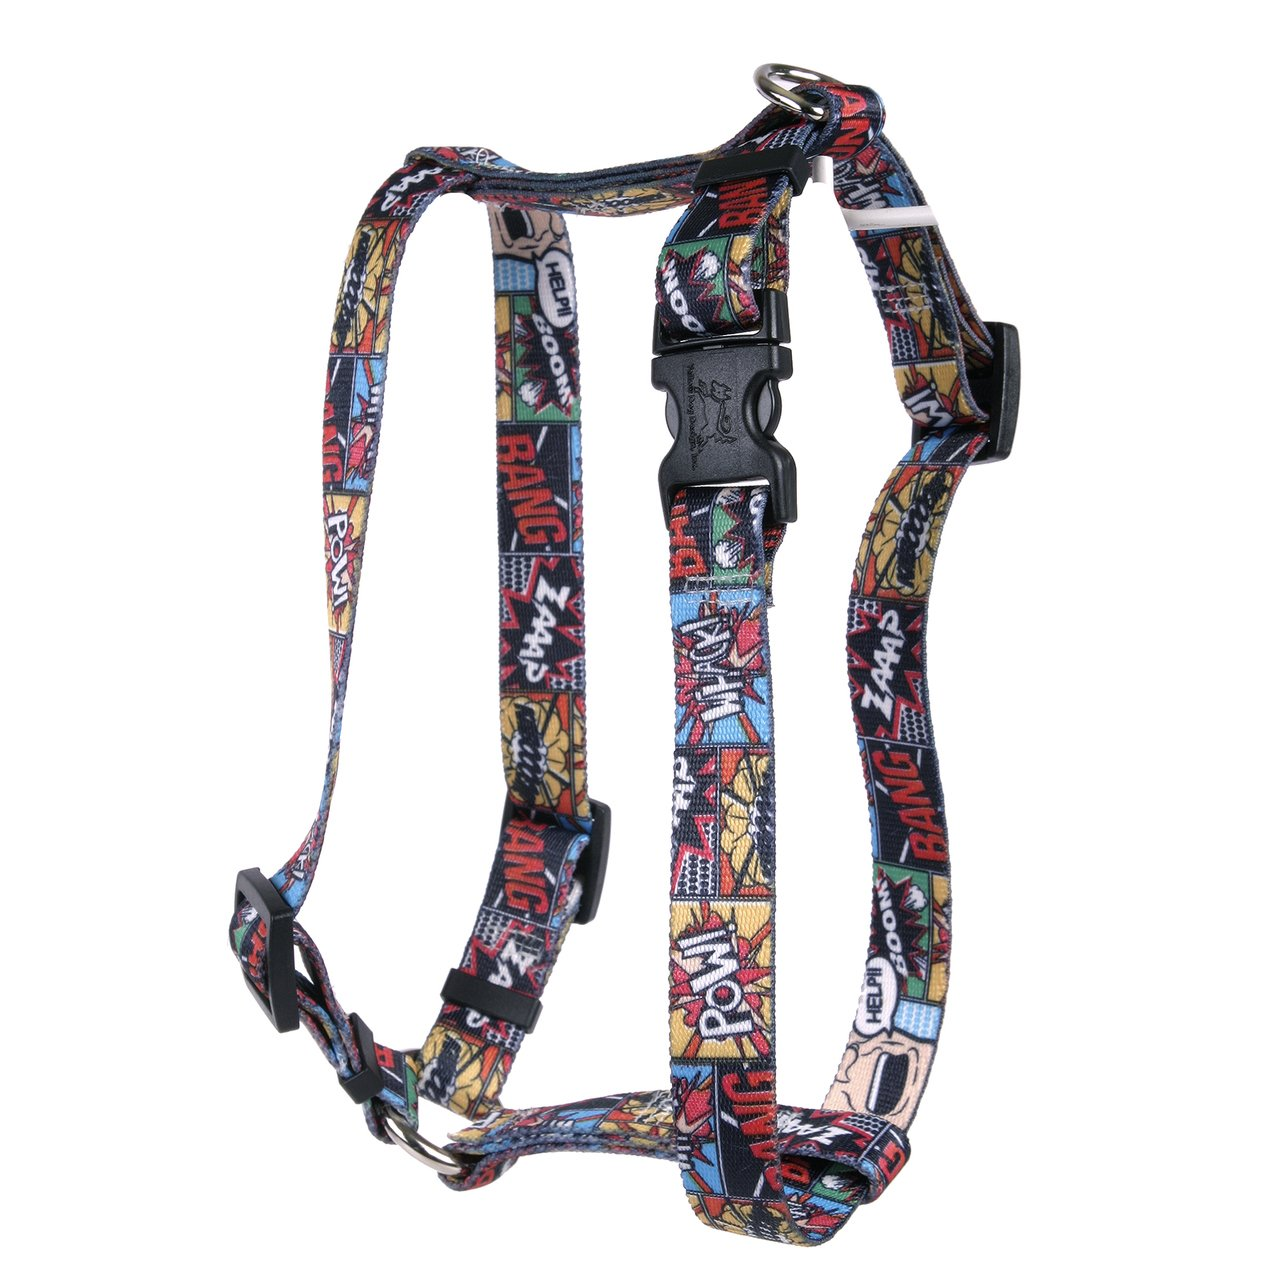 Yellow Dog Design Vintage Comics Roman Style H Dog Harness-Large-1'' and fits Chest Circumference of 20 to 28''